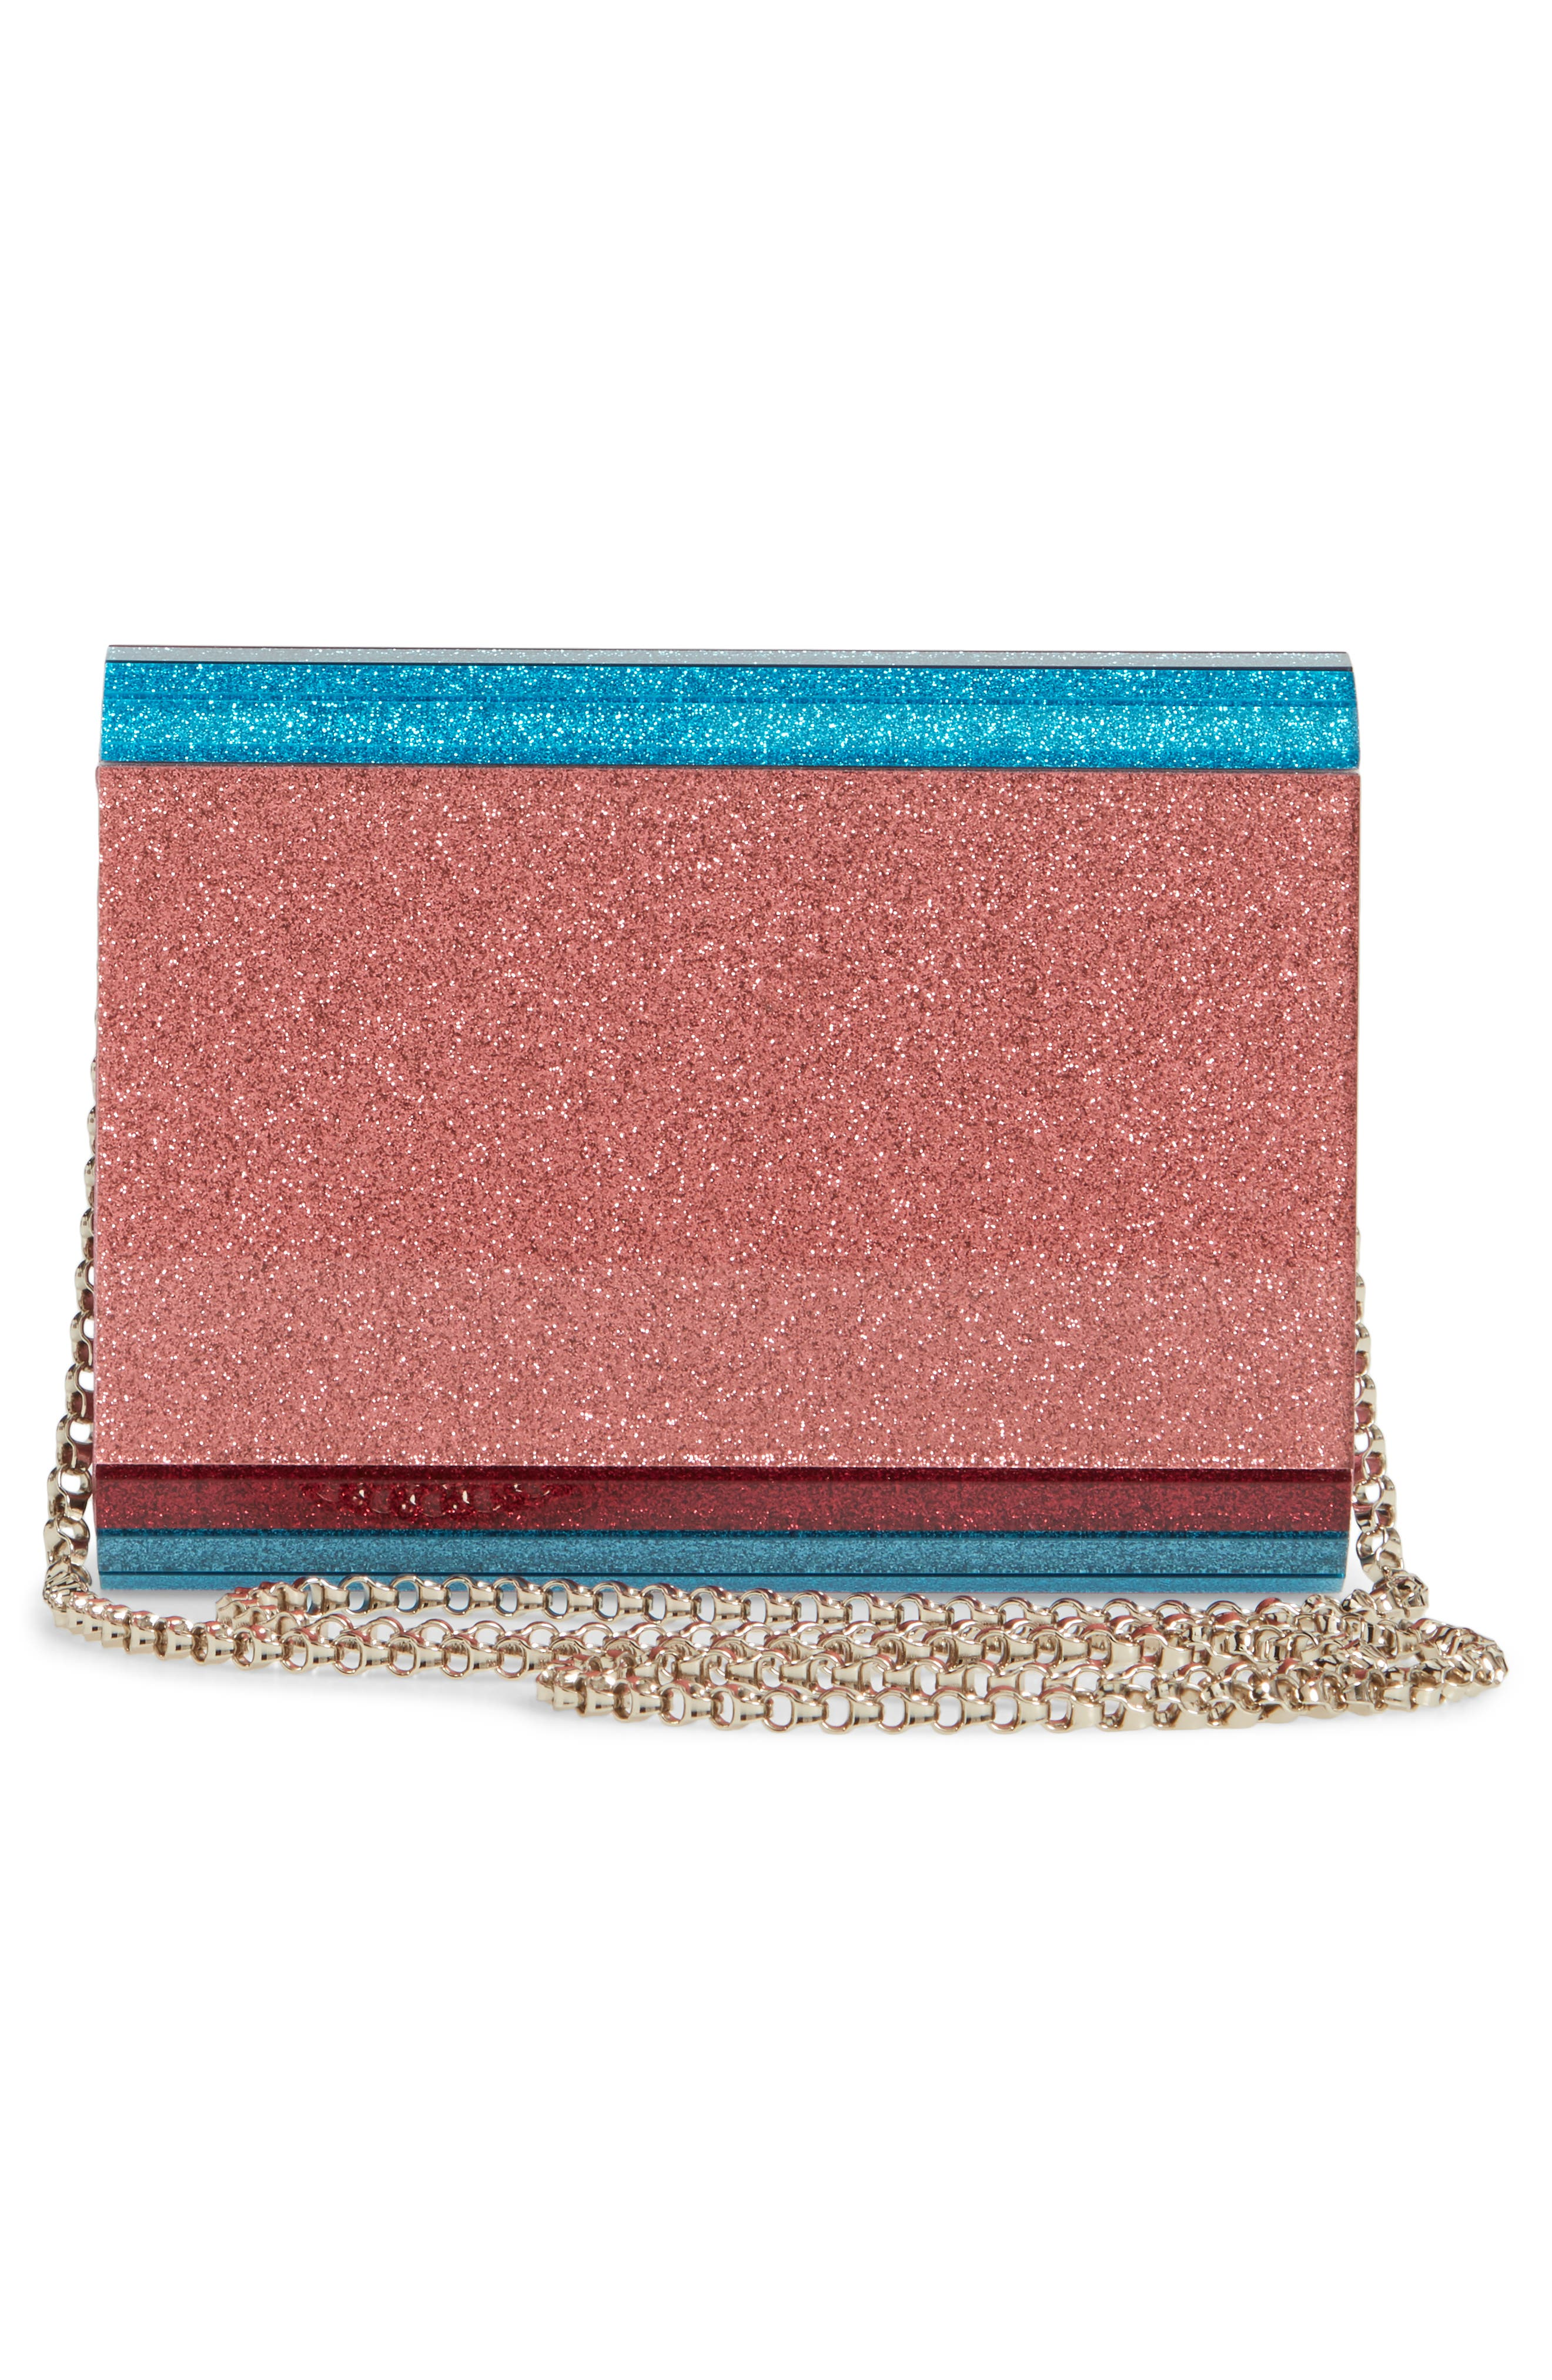 JIMMY CHOO,                             Candy Colorblock Glitter Clutch,                             Alternate thumbnail 3, color,                             RASPBERRY MIX